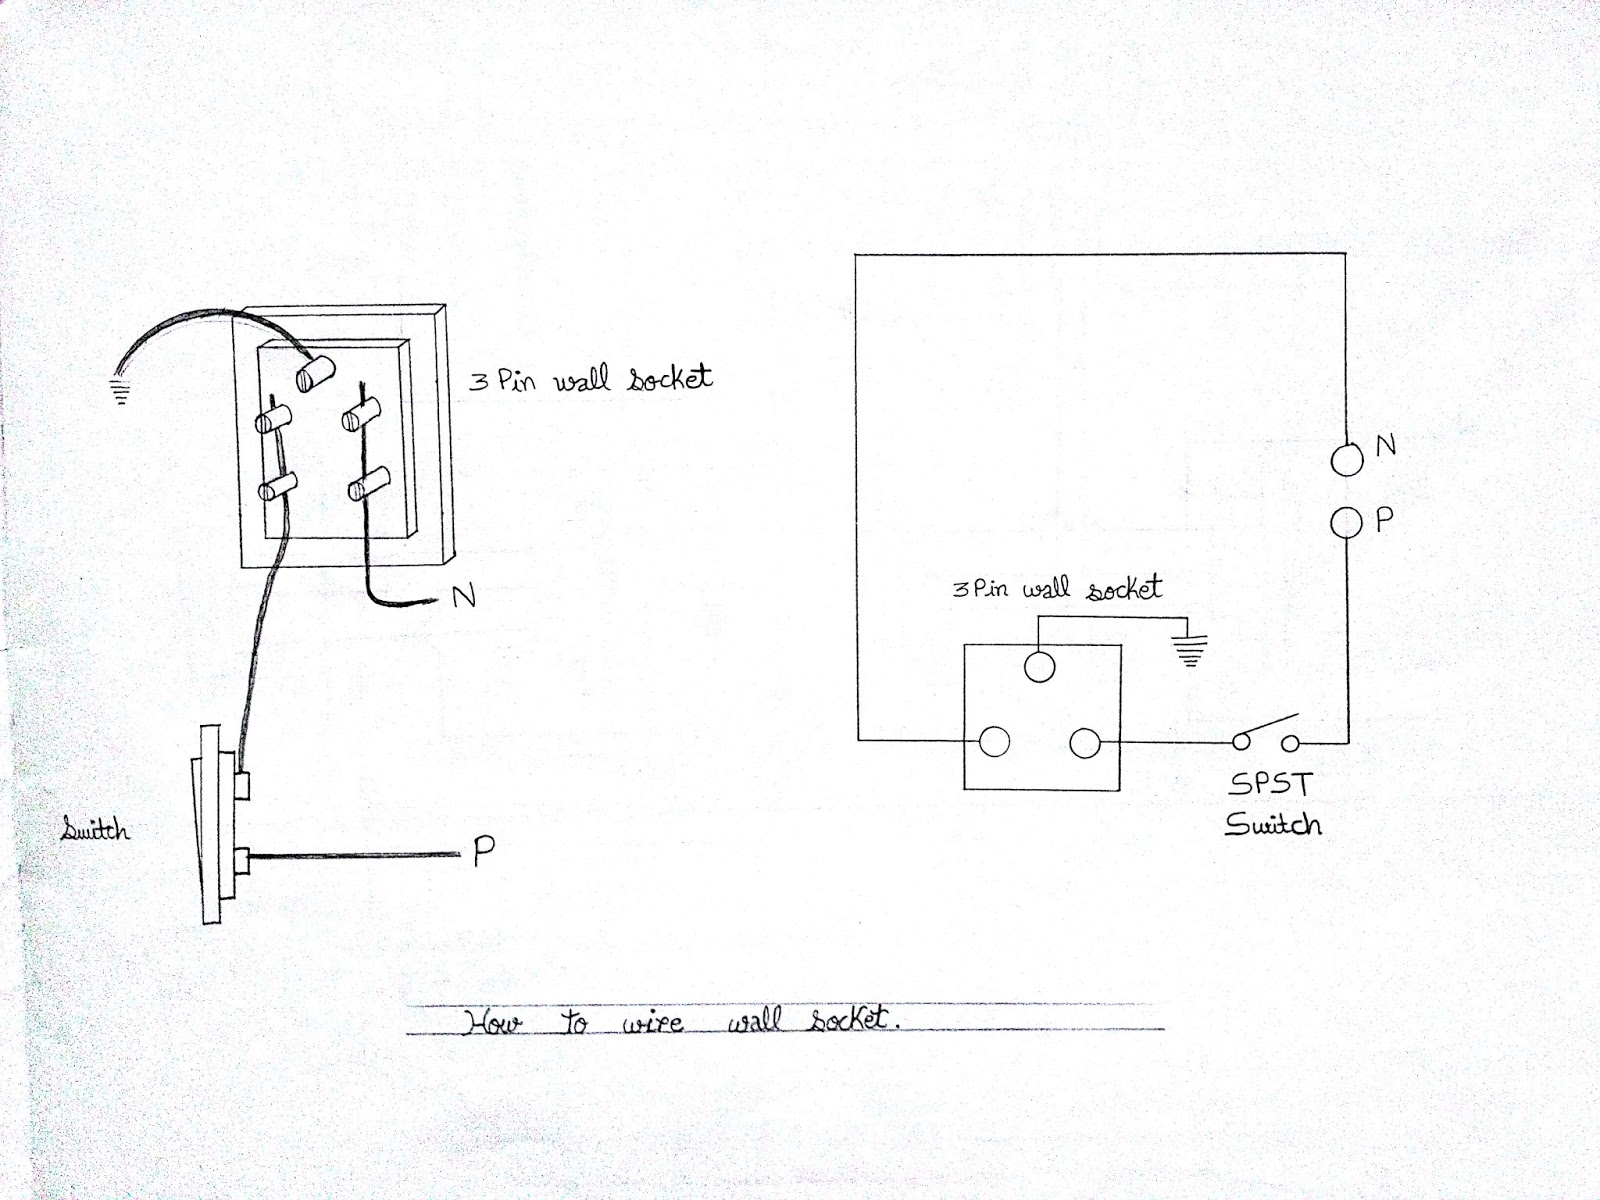 Learn Electrician: Electrical Wiring Diagrams of Switches, Sockets on